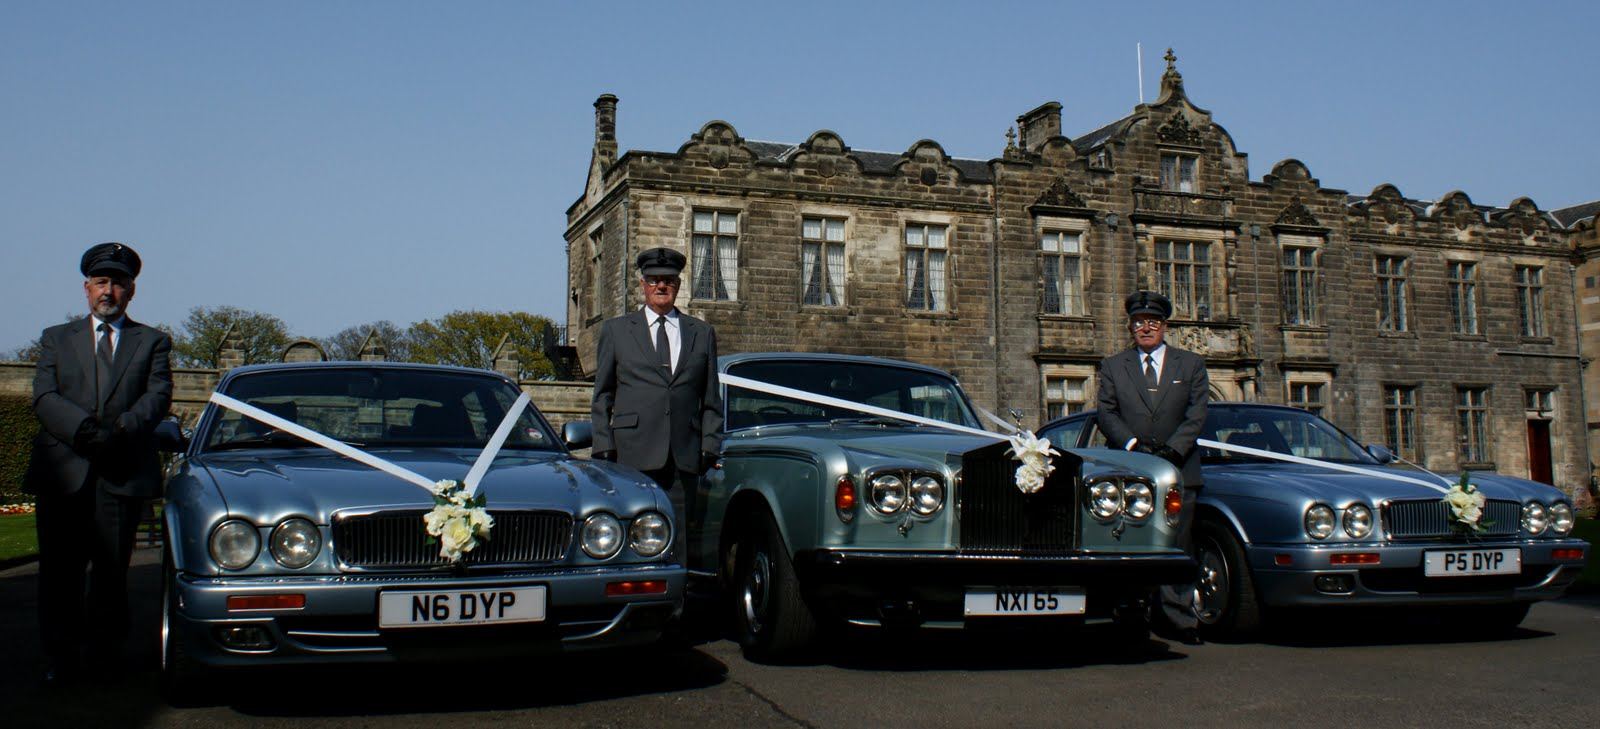 Tour Scotland Photograph Of Scottish Wedding Cars In The Quadrangle St Salvator S College Andrews Fife Drivers With Their Waiting